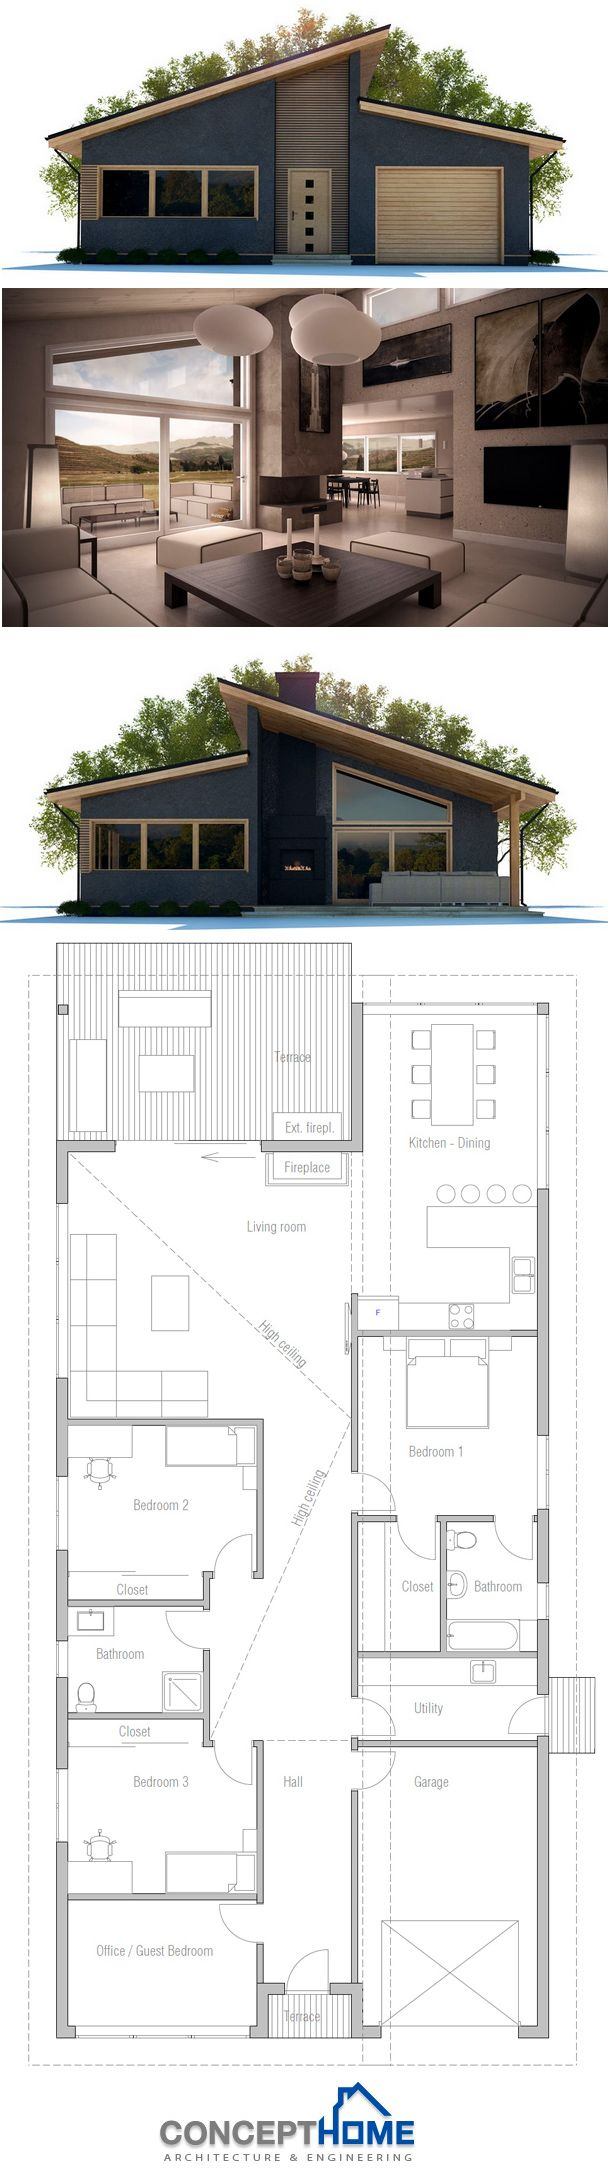 1000+ ideas about Modern Home Plans on Pinterest Home Plans ... - ^